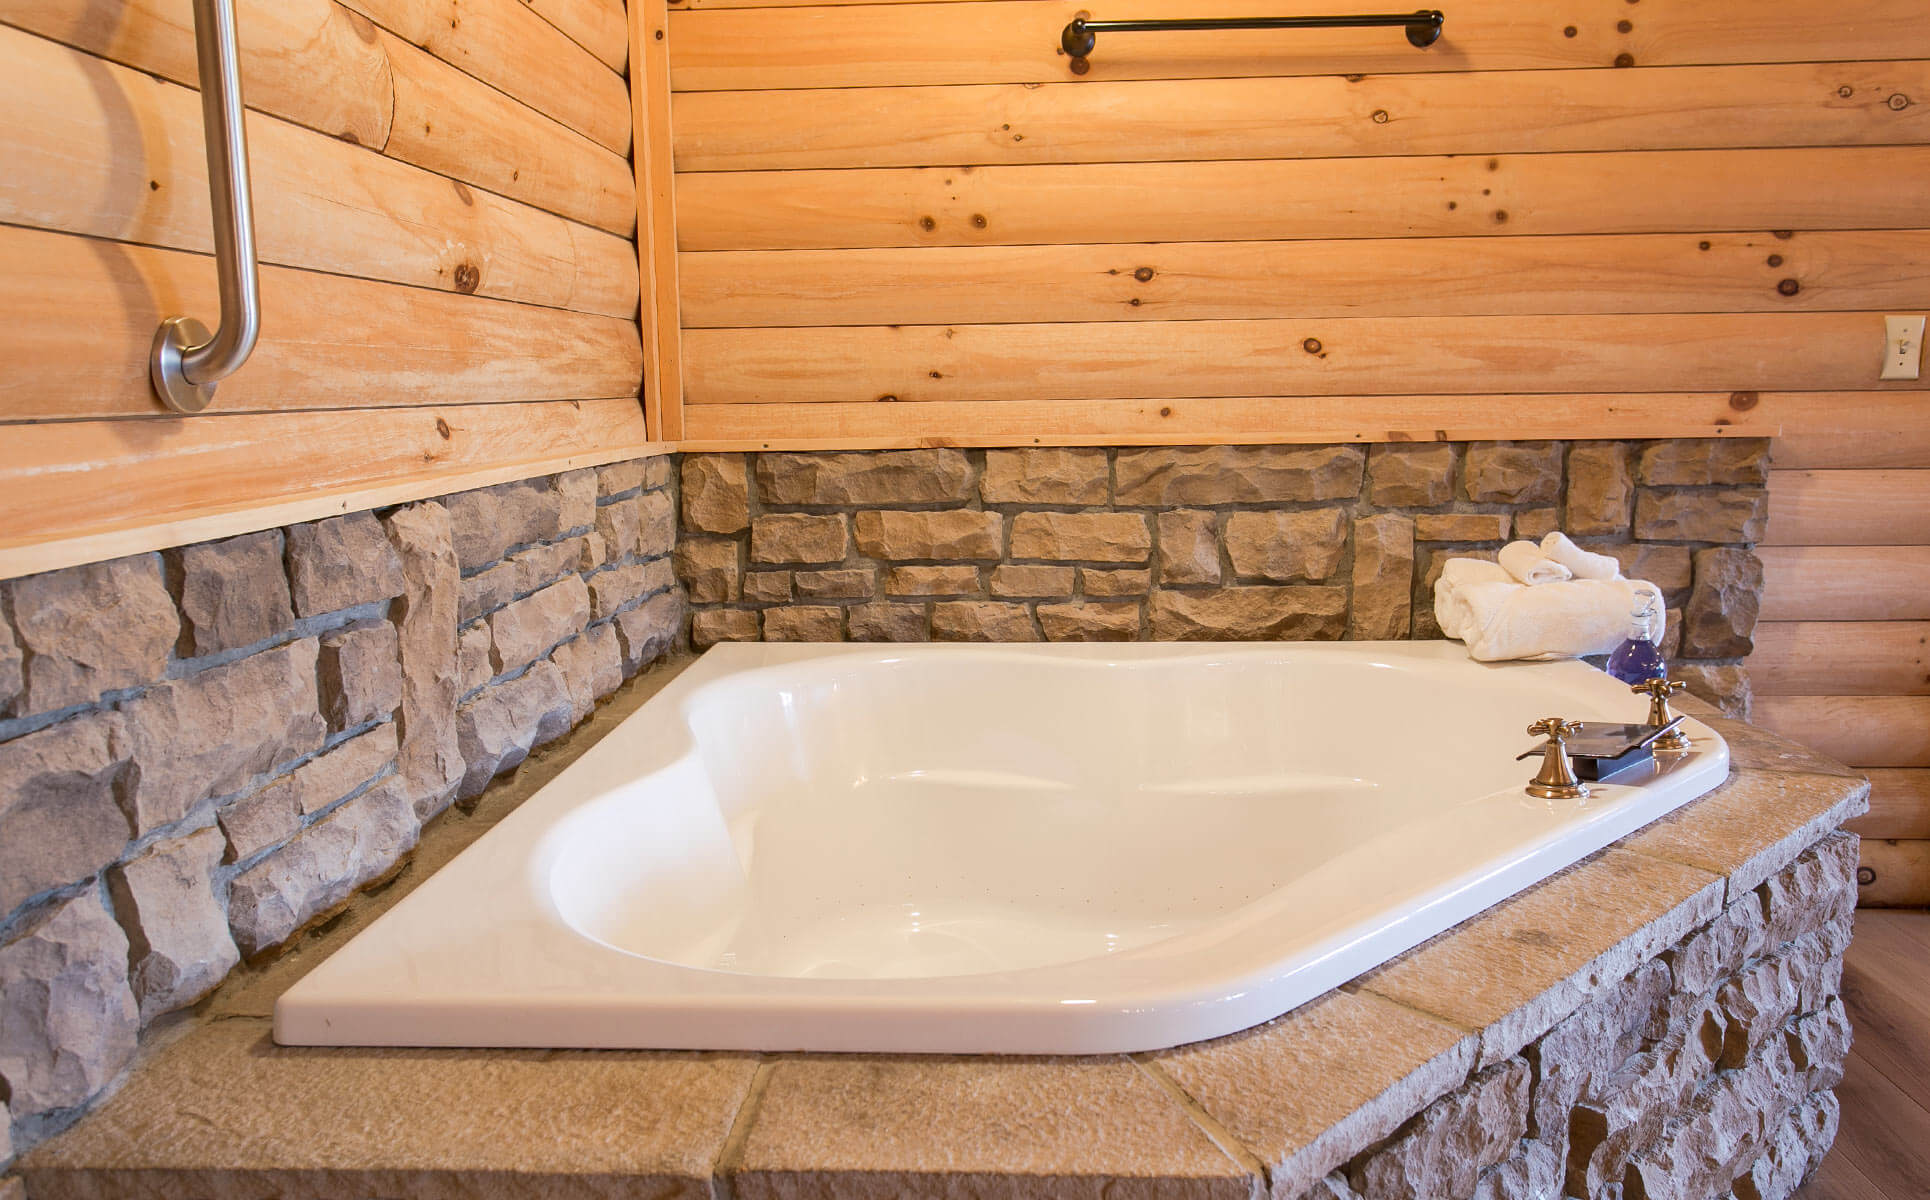 Two-person soaking tub surrounded by stone